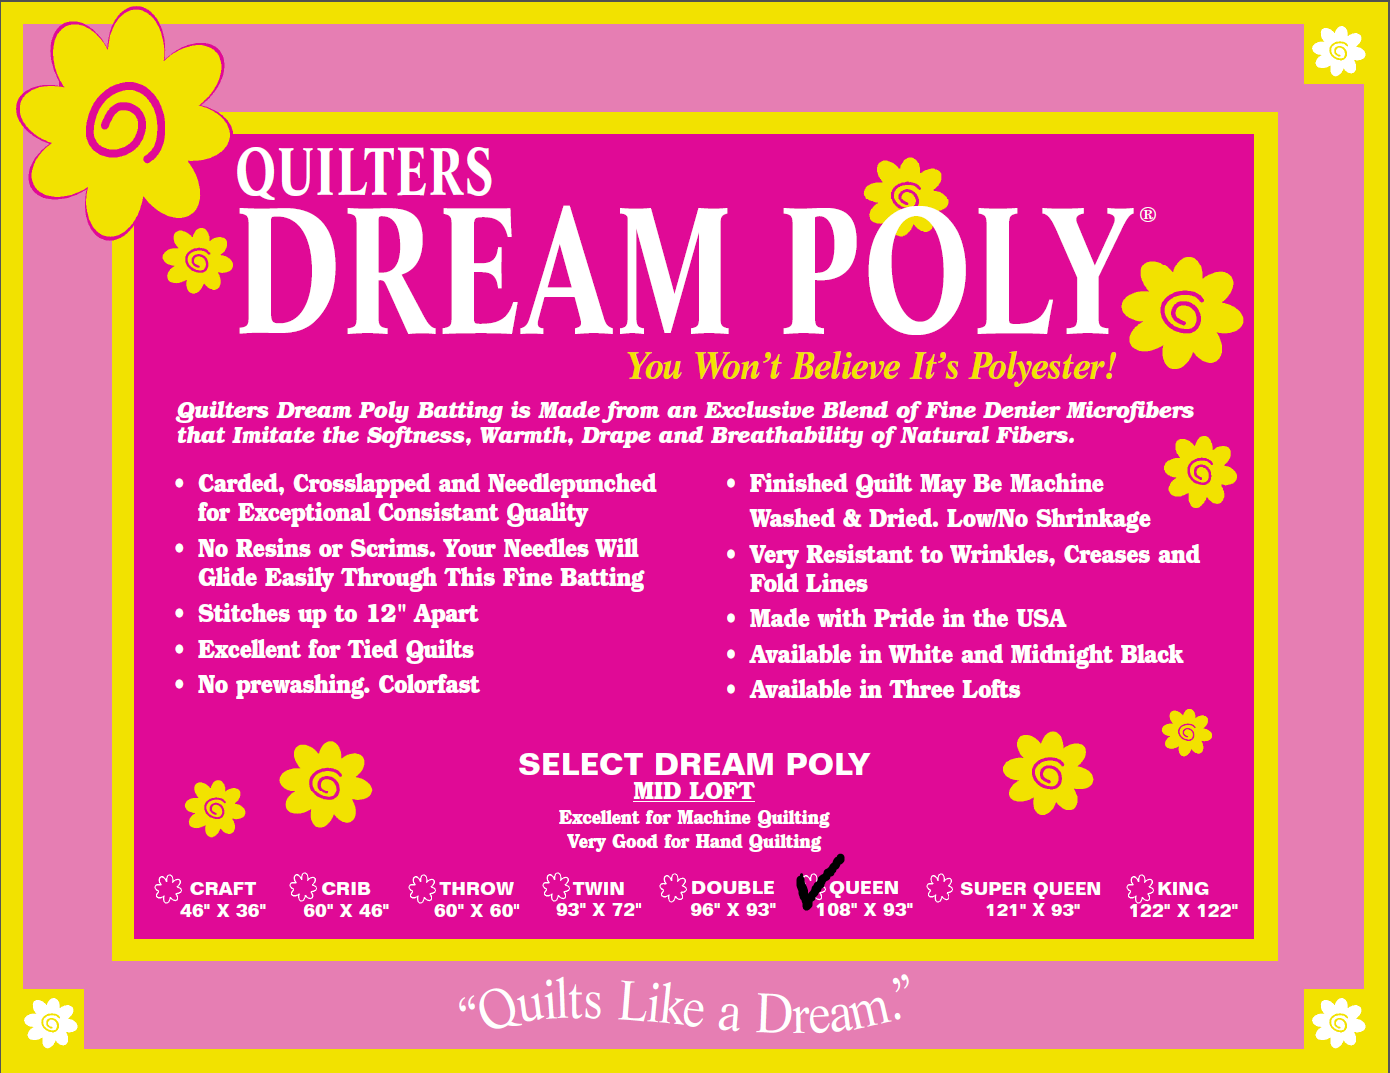 Quilters Dream Poly Select Queen 108 x 93